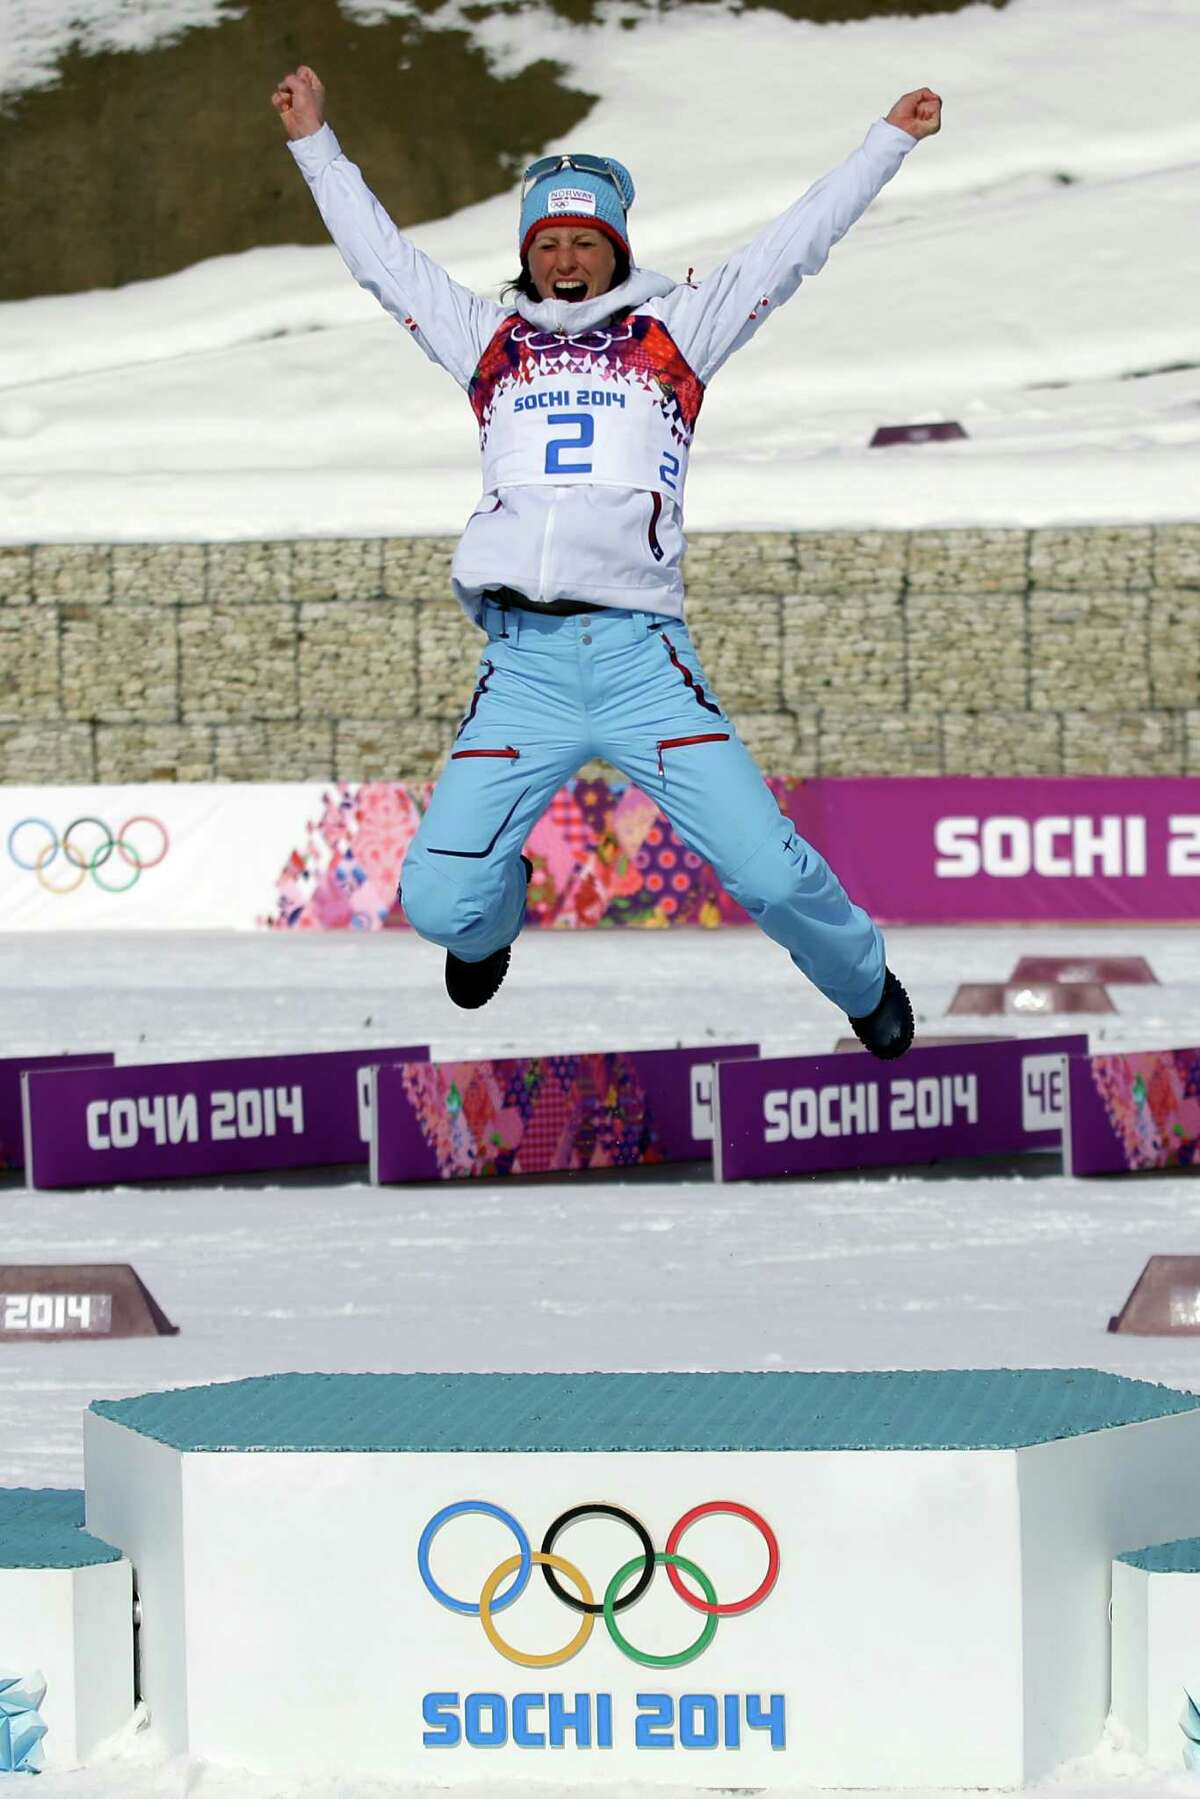 Norway's Marit Bjoergen celebrates on the podium after winning the gold medal in the women's 30K cross-country race at the 2014 Winter Olympics, Saturday, Feb. 22, 2014, in Krasnaya Polyana, Russia. (AP Photo/Gregorio Borgia) ORG XMIT: OLYCC326